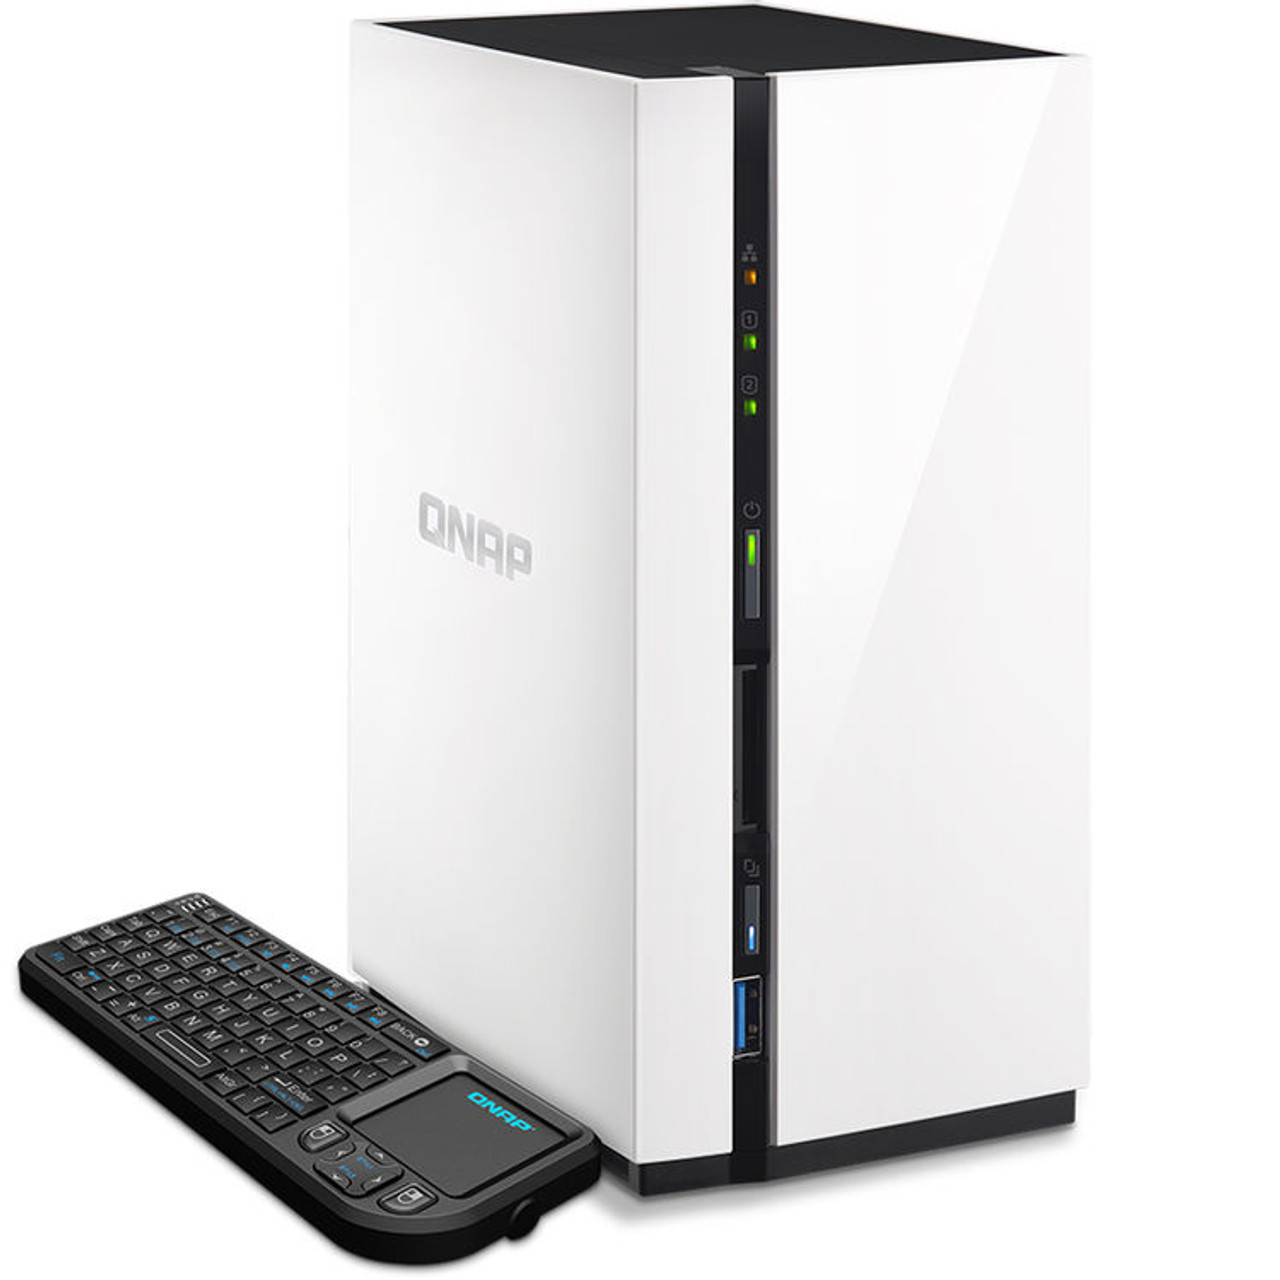 QNAP 2-Bay Personal Cloud NAS QTS and Android with DLNA